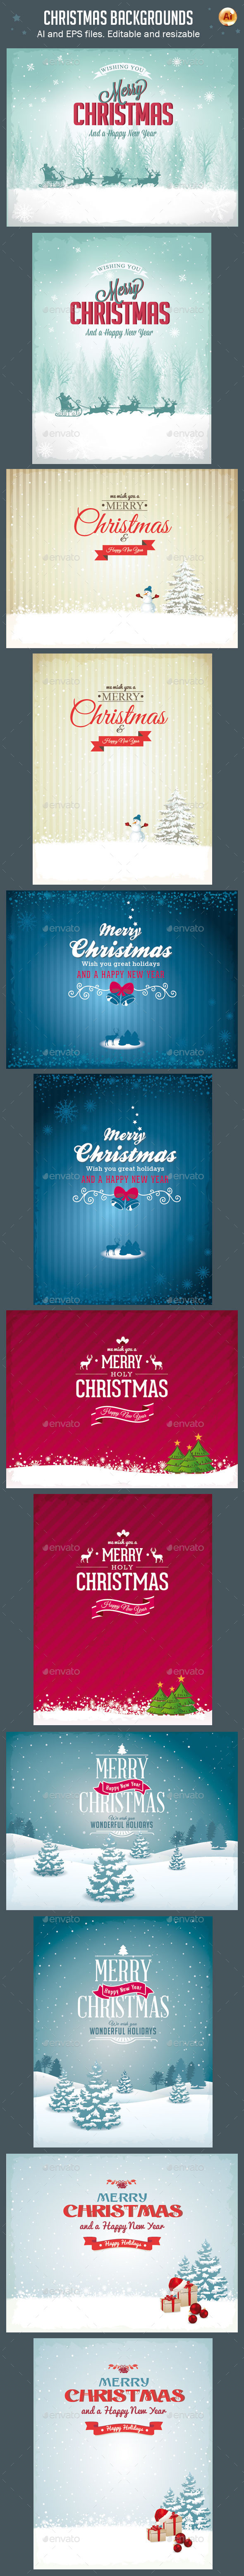 GraphicRiver Vector Christmas Backgrounds Vol.2 9258759